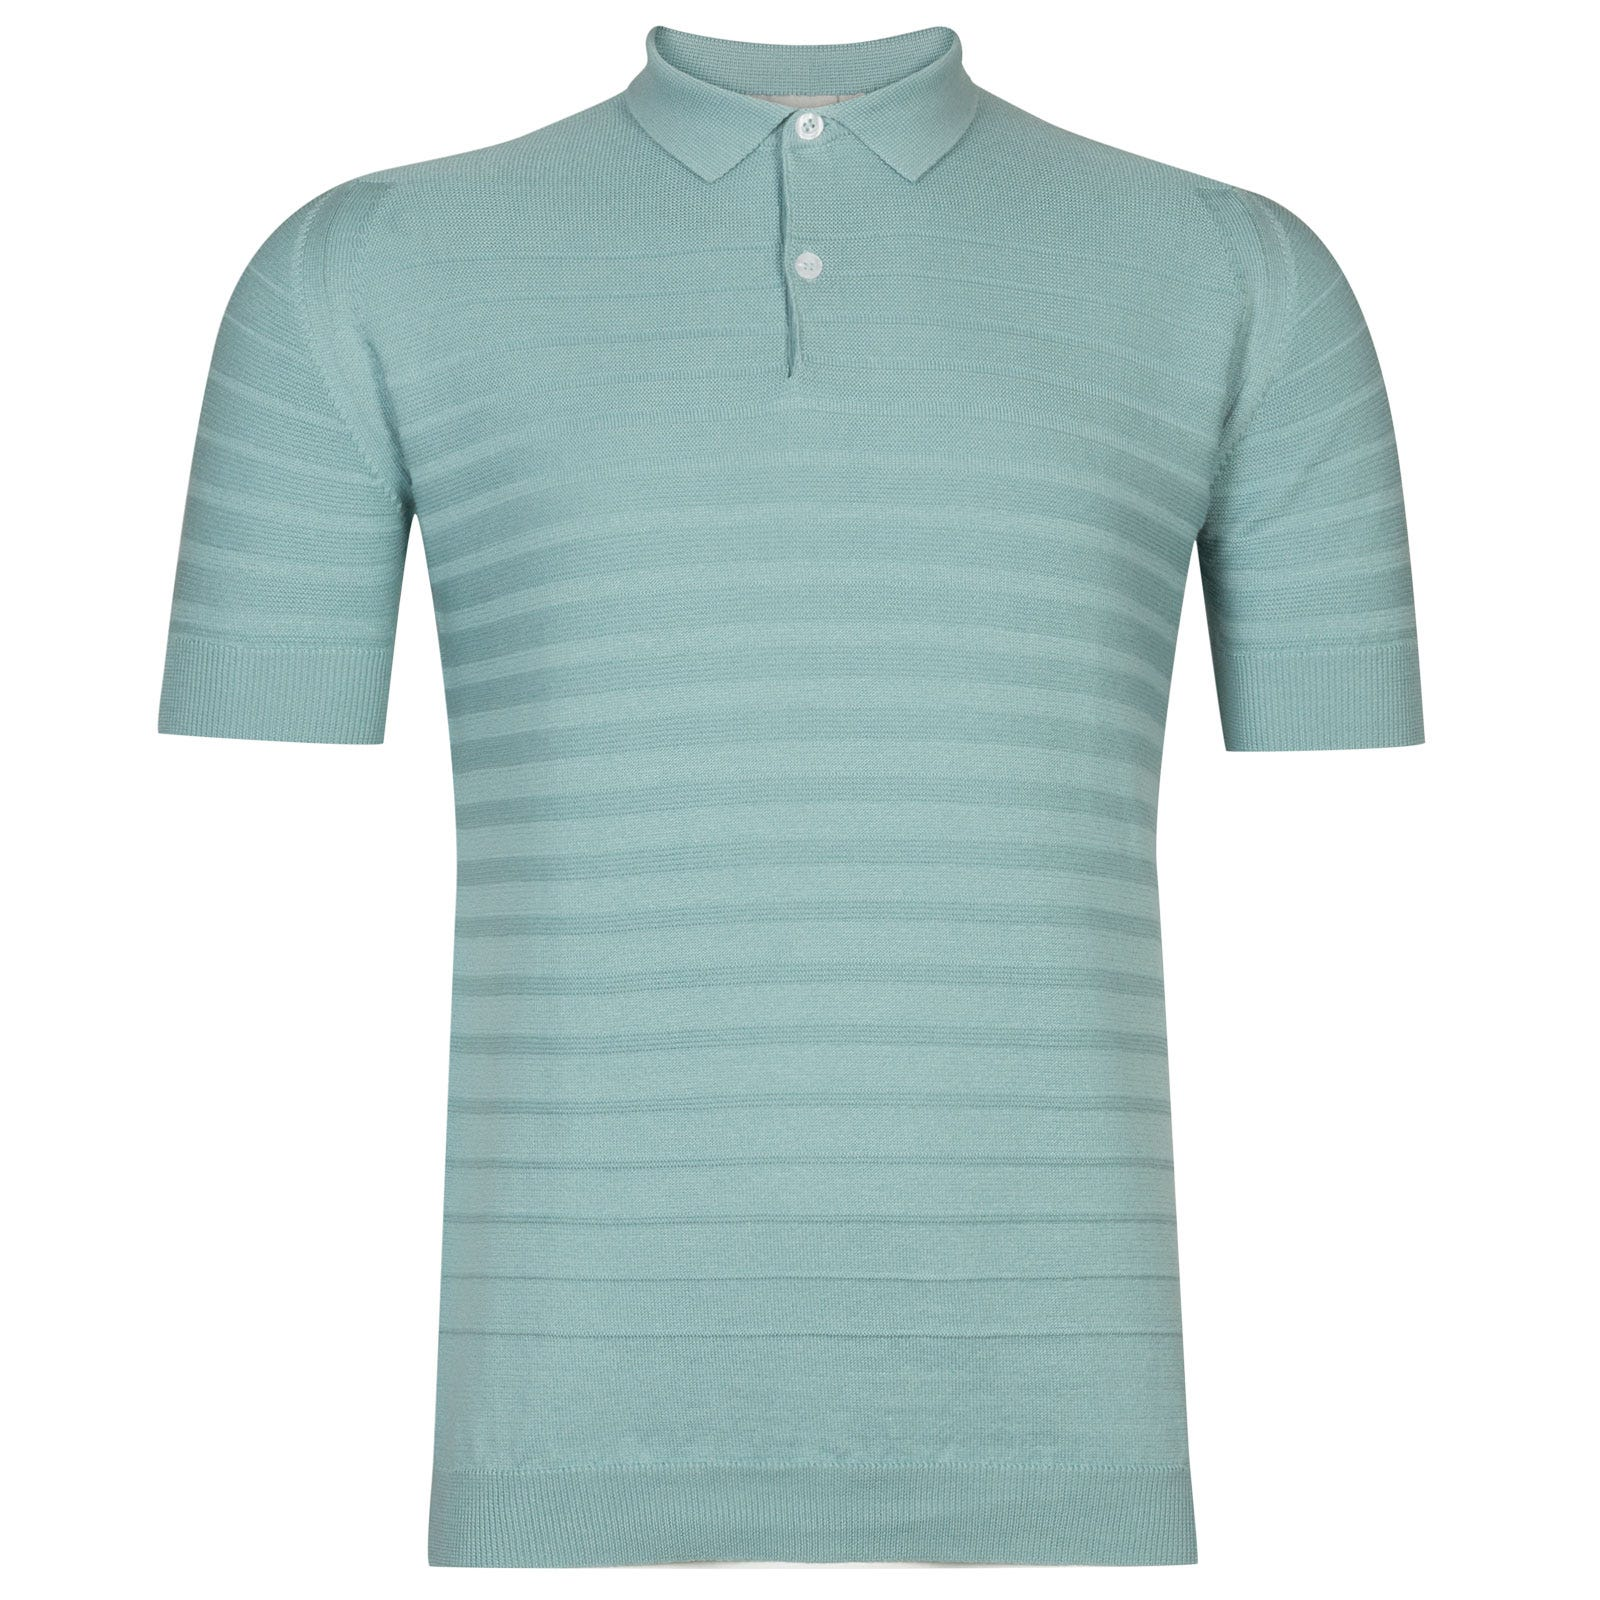 John Smedley Zuber Cotton Shirt in Terrill Green -M